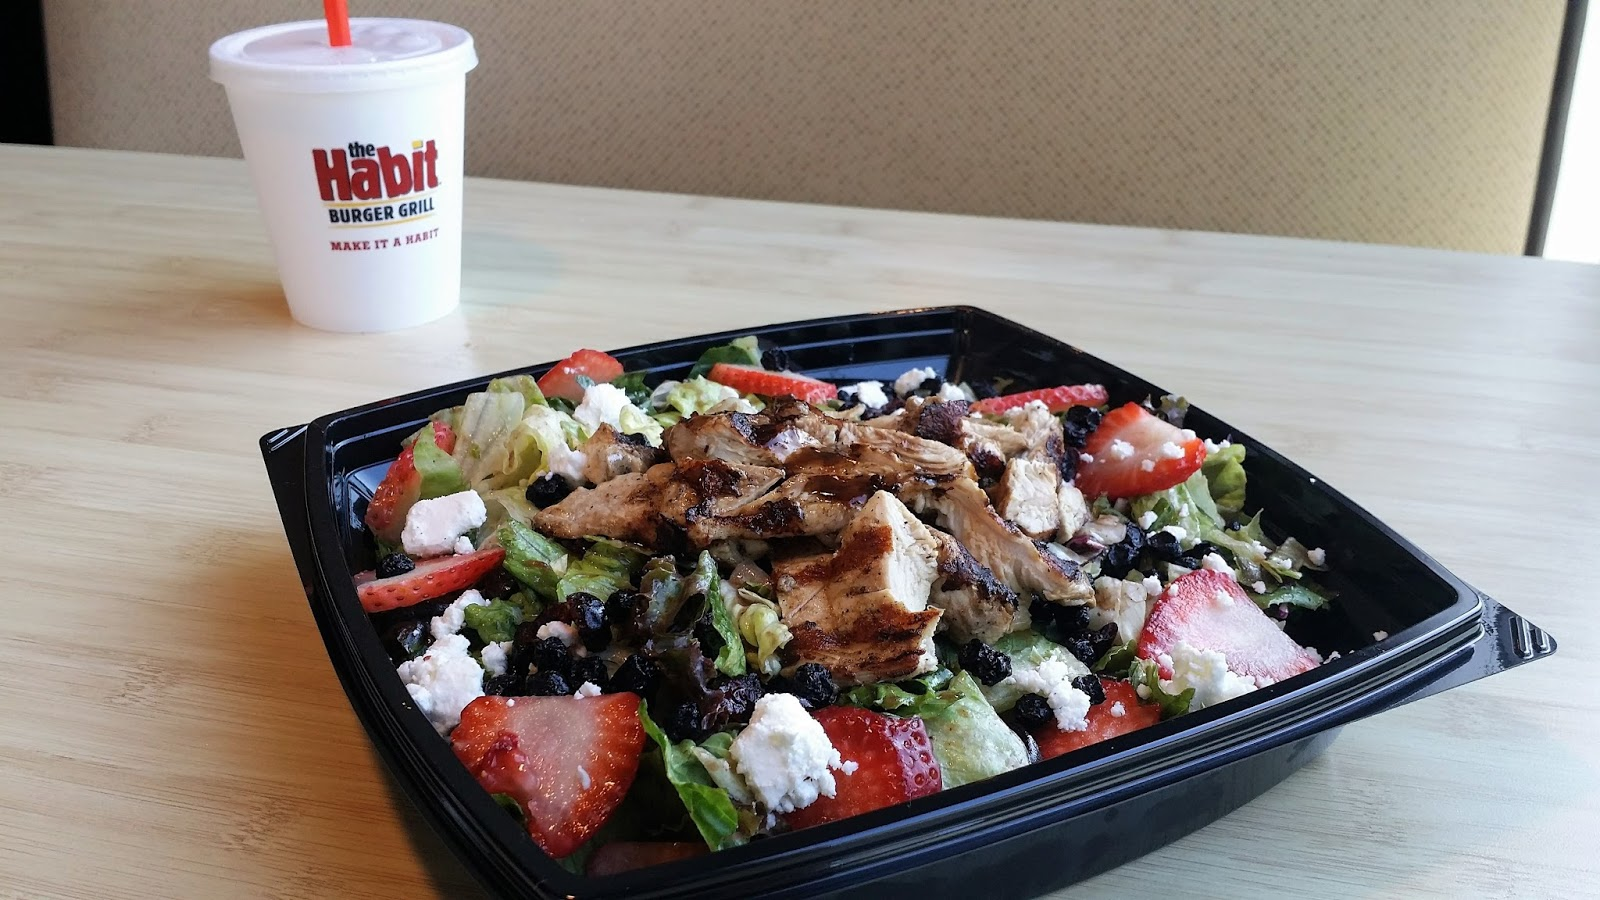 New Strawberry Balsamic Chicken Salad From The Habit Burger Grill